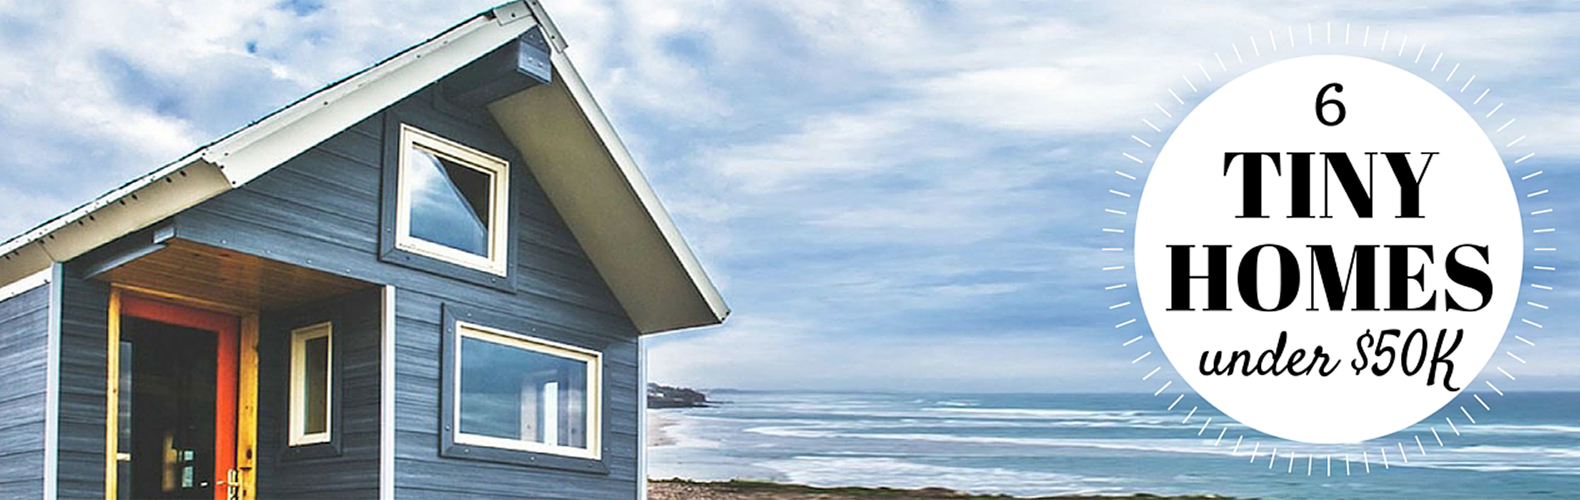 tiny homes, tiny houses, green architecture, green design, sustainable design, top inhabitat story 2016